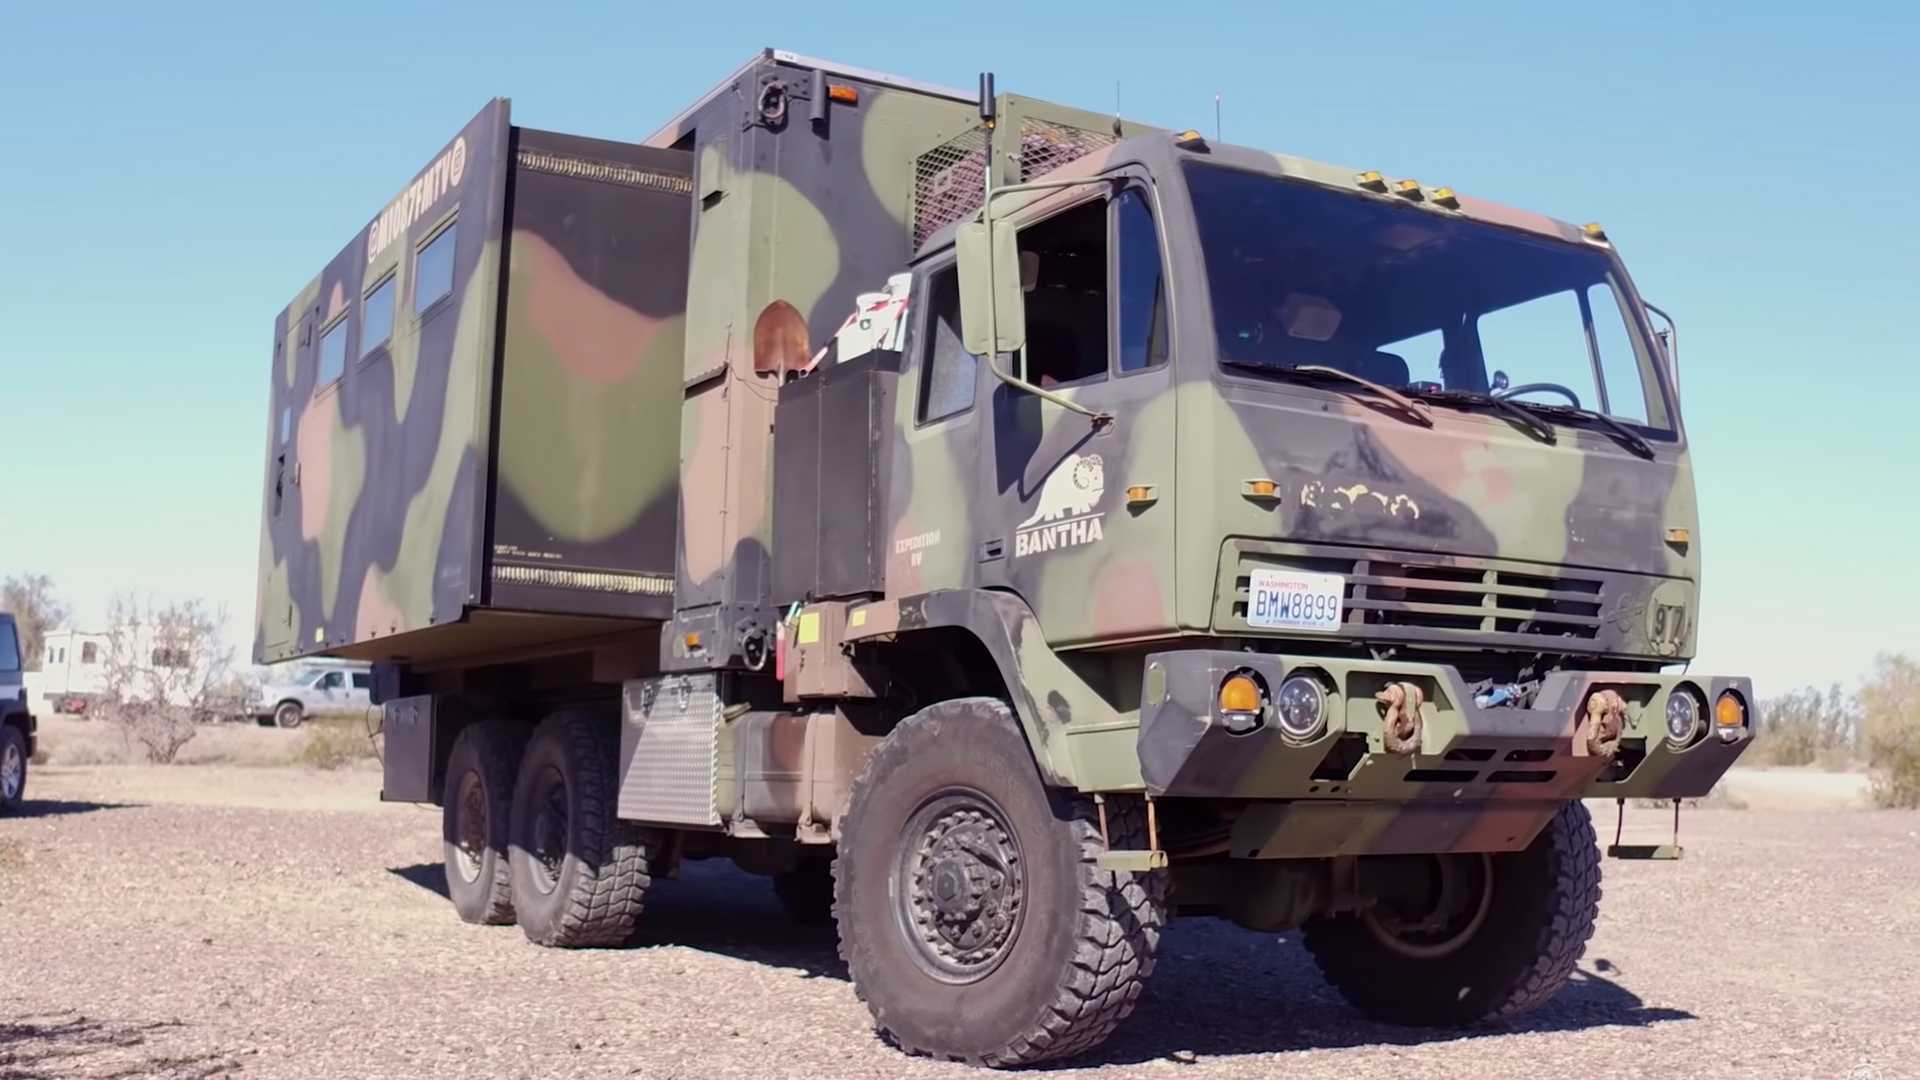 Military Truck With Extending Sides Becomes Camper With Solar Roof